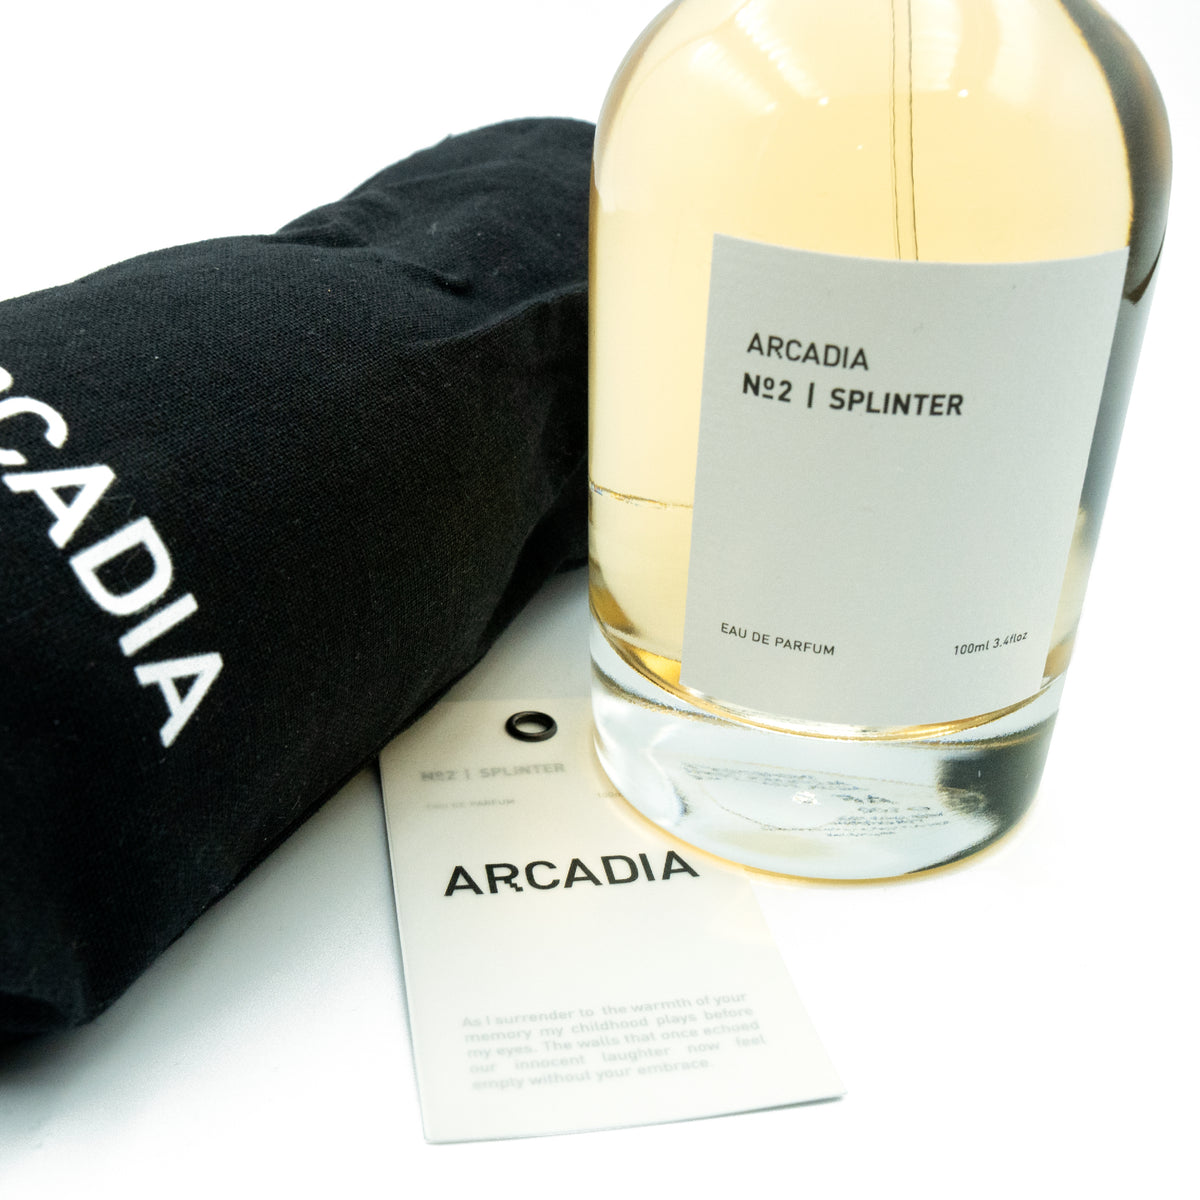 ARCADIA PERFUME EDITION 1 - NO 2 | SPLINTER